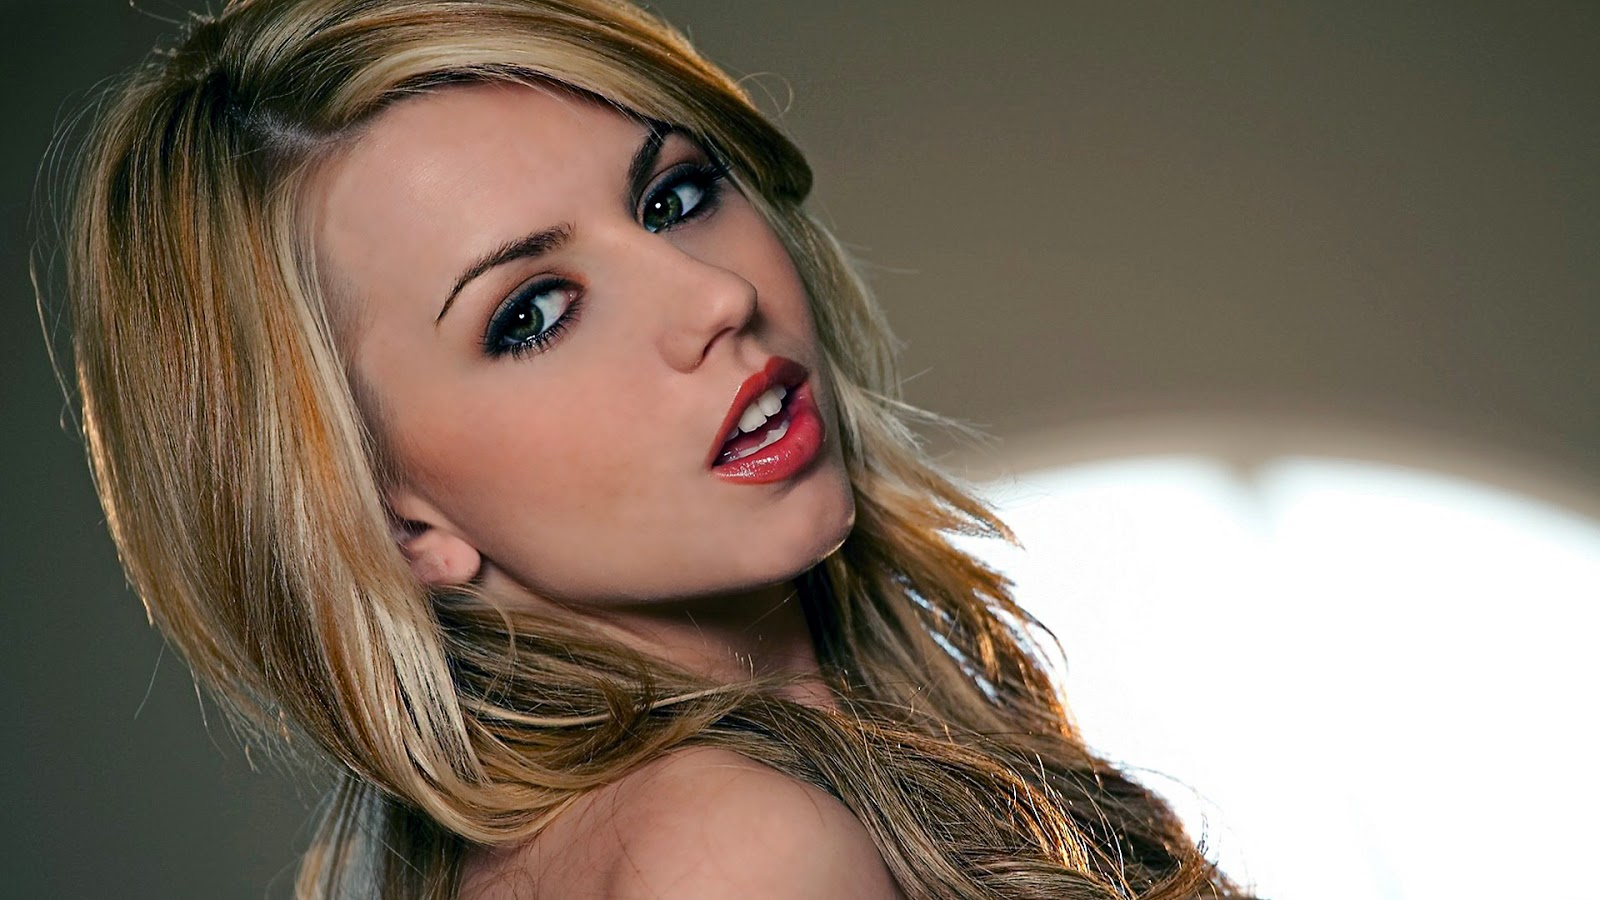 lexi belle hot look wallpaper